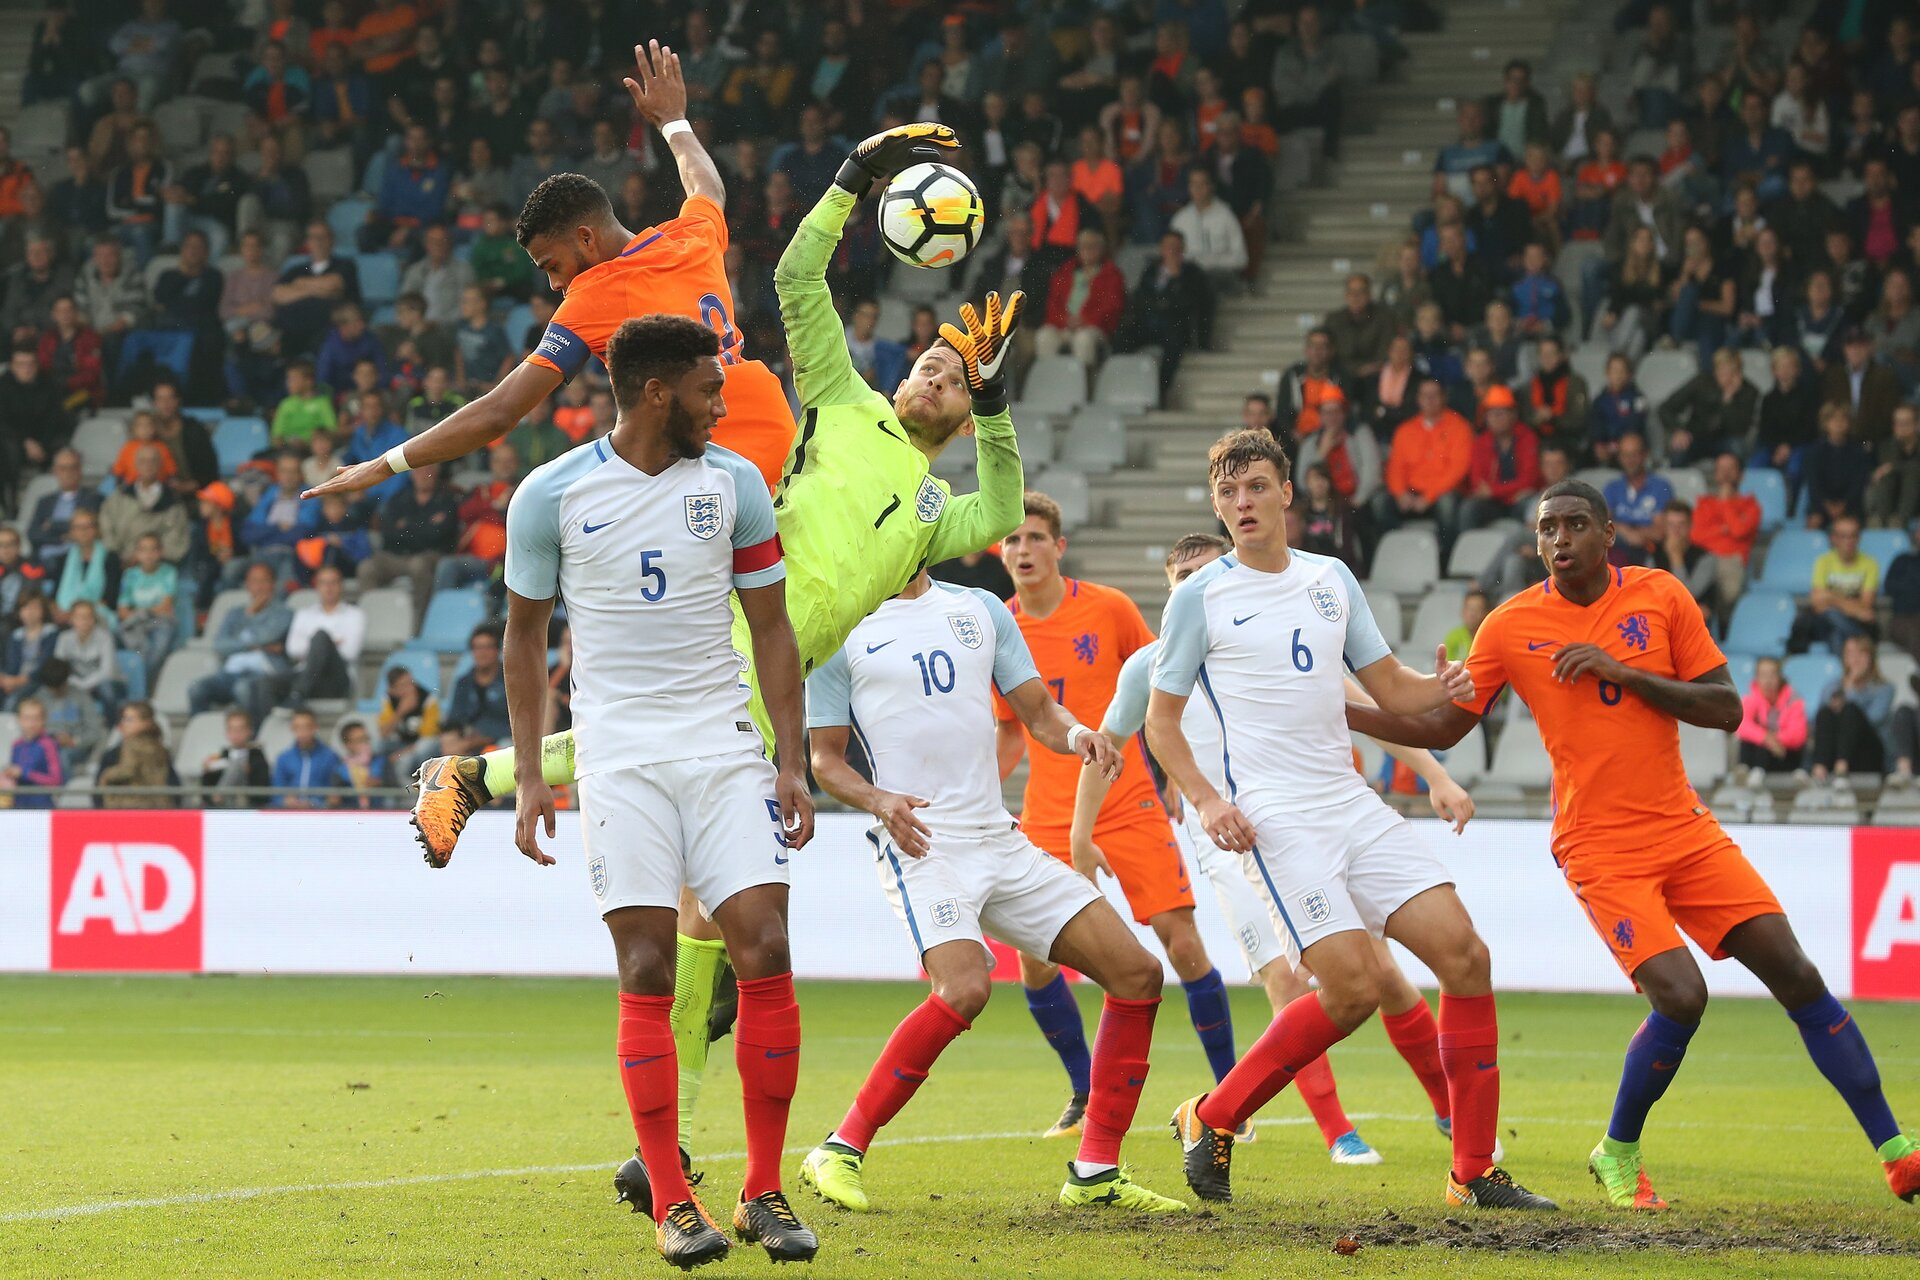 Joe Gomez of England U21, Jeremiah St. Juste of Holland U21, goalkeeper Angus Gunn of England U21, Dominic Solanke of England U21, Guus Til of Holland U21, Dael Fry of England U21, Pablo Rosario of Holland U21 during the EURO U21 2017 qualifying match between Netherlands U21 and England U21 at the Vijverberg stadium on September 01, 2017 in Doetinchem, The Netherlands(Photo by VI Images via Getty Images)